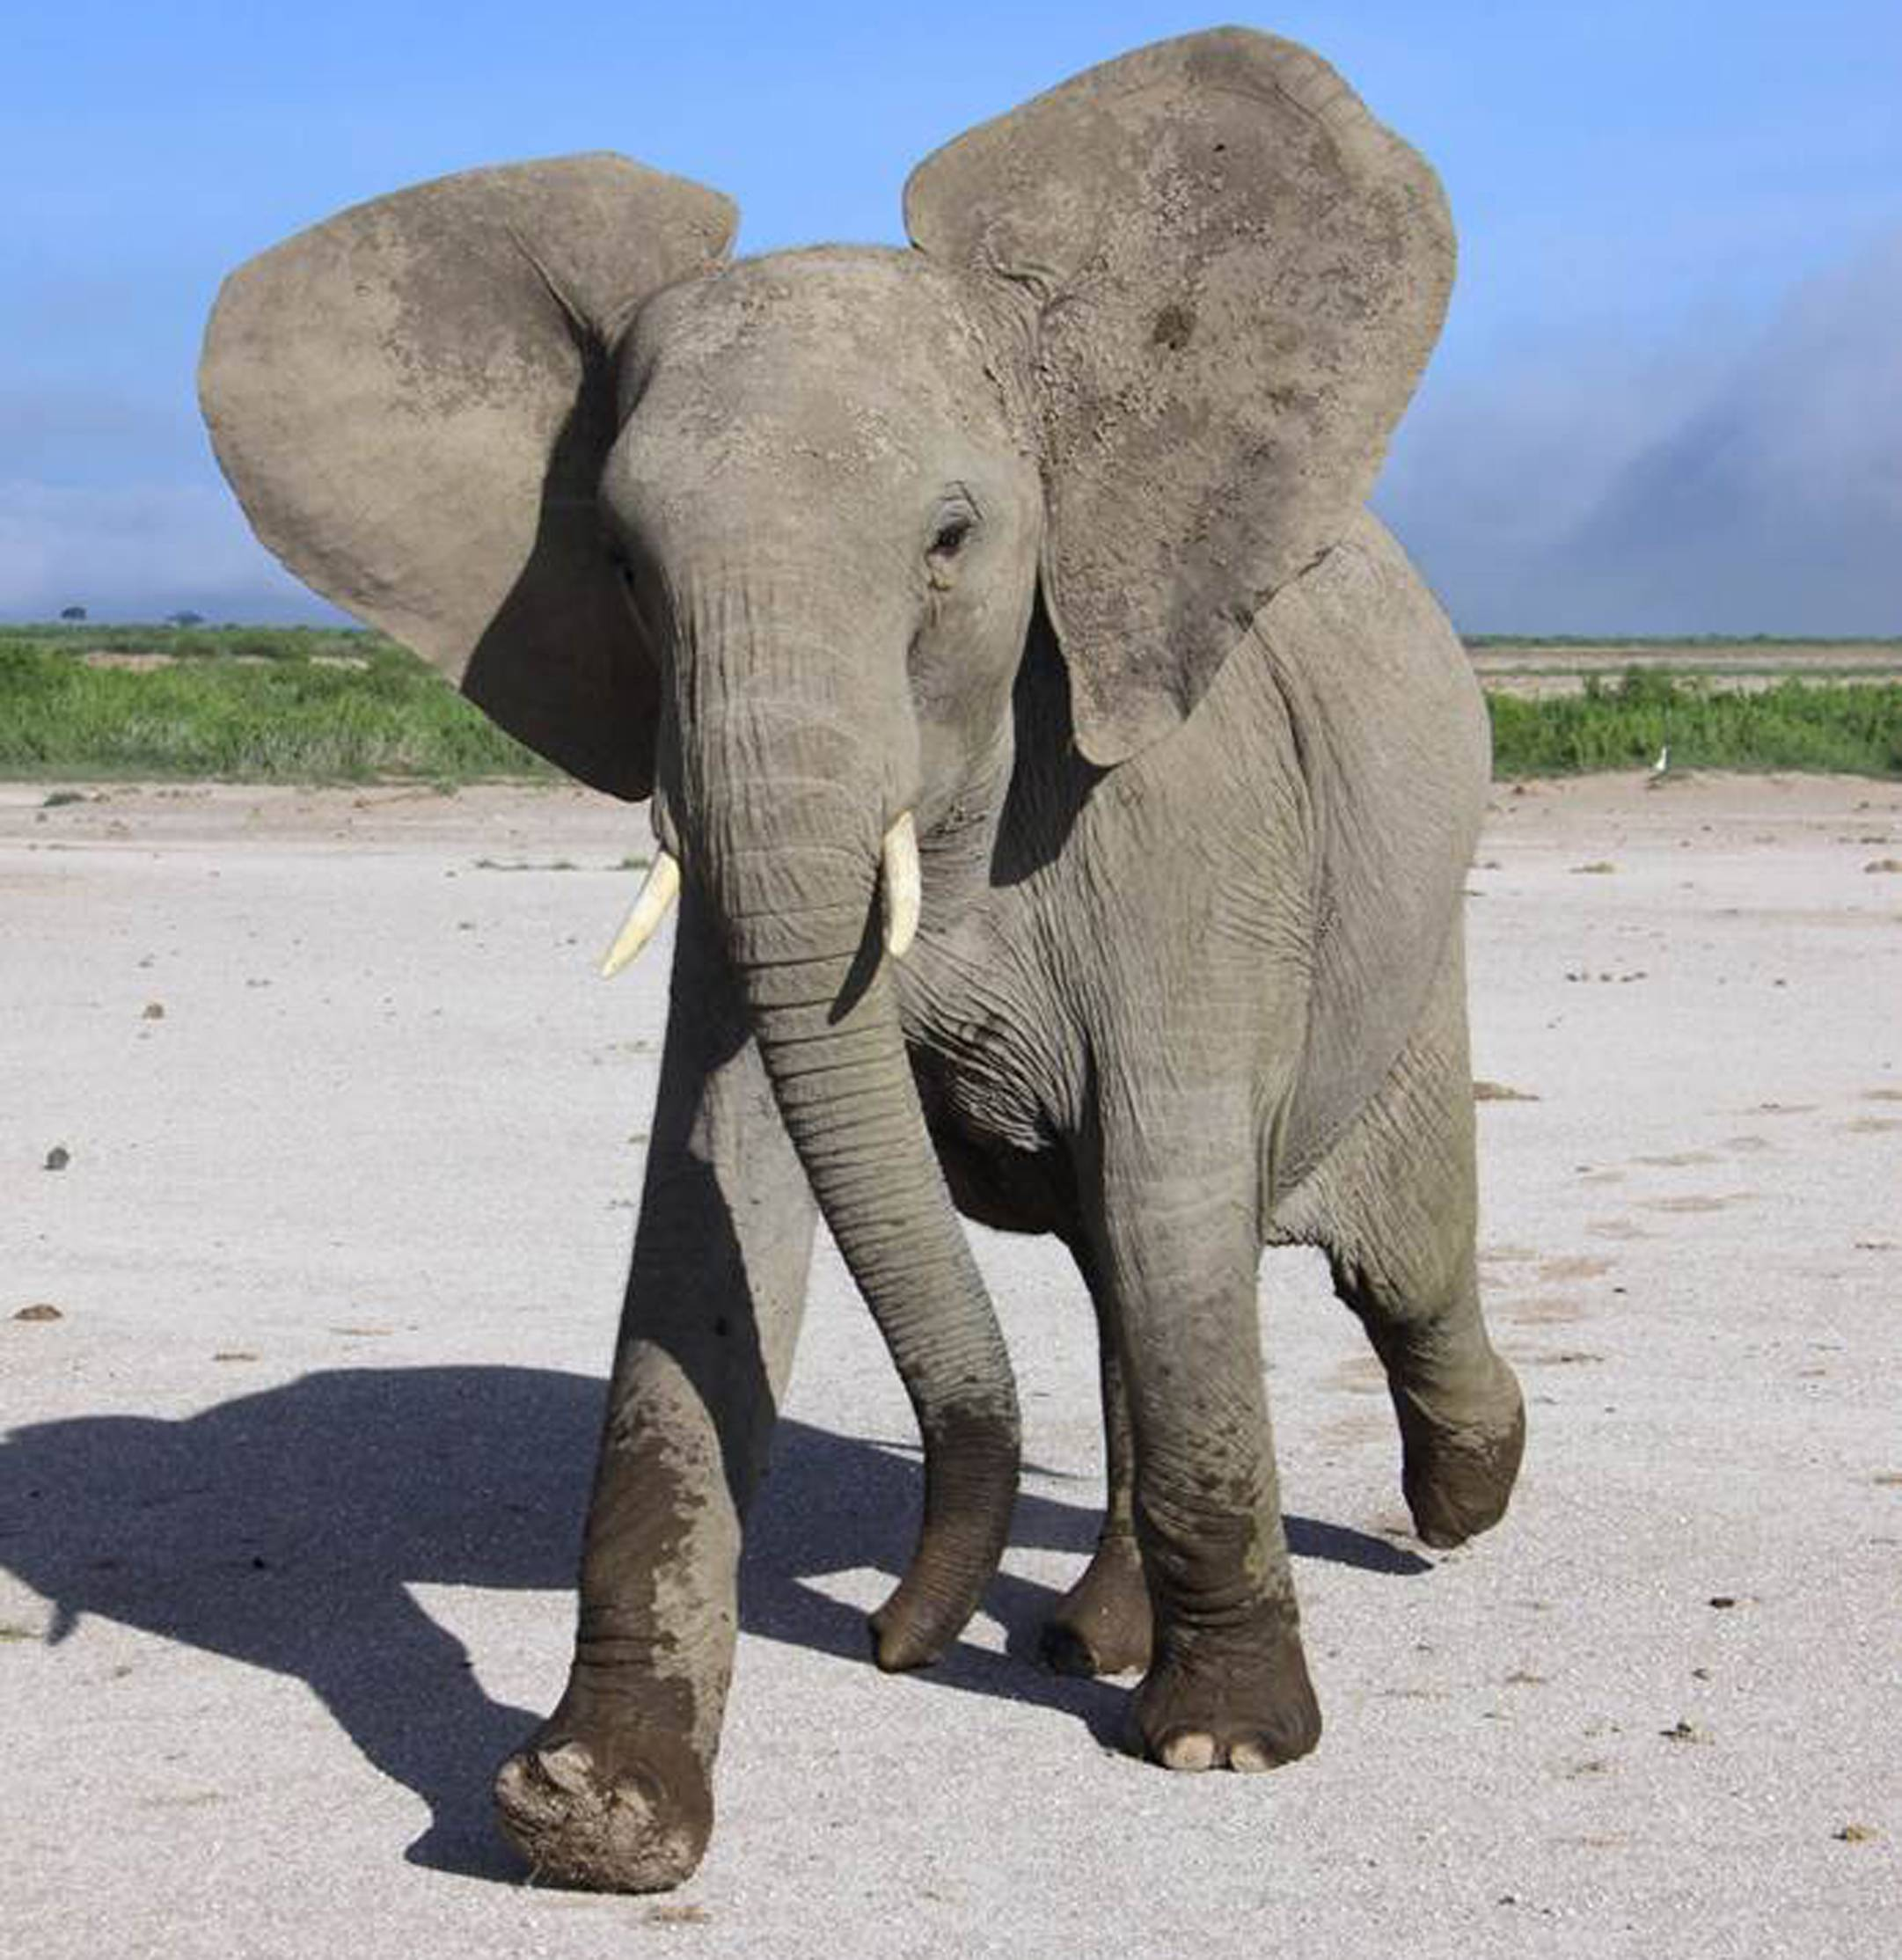 This photo provided by the University of Sussex, taken in April 2011, shows a wild elephant in Amboseli National Park in Kenya reacting to sound played by scientists in experiments that show they can distinguish between human languages and genders. Elephants are so clever they use their famed memory to be discriminating listeners of us humans.